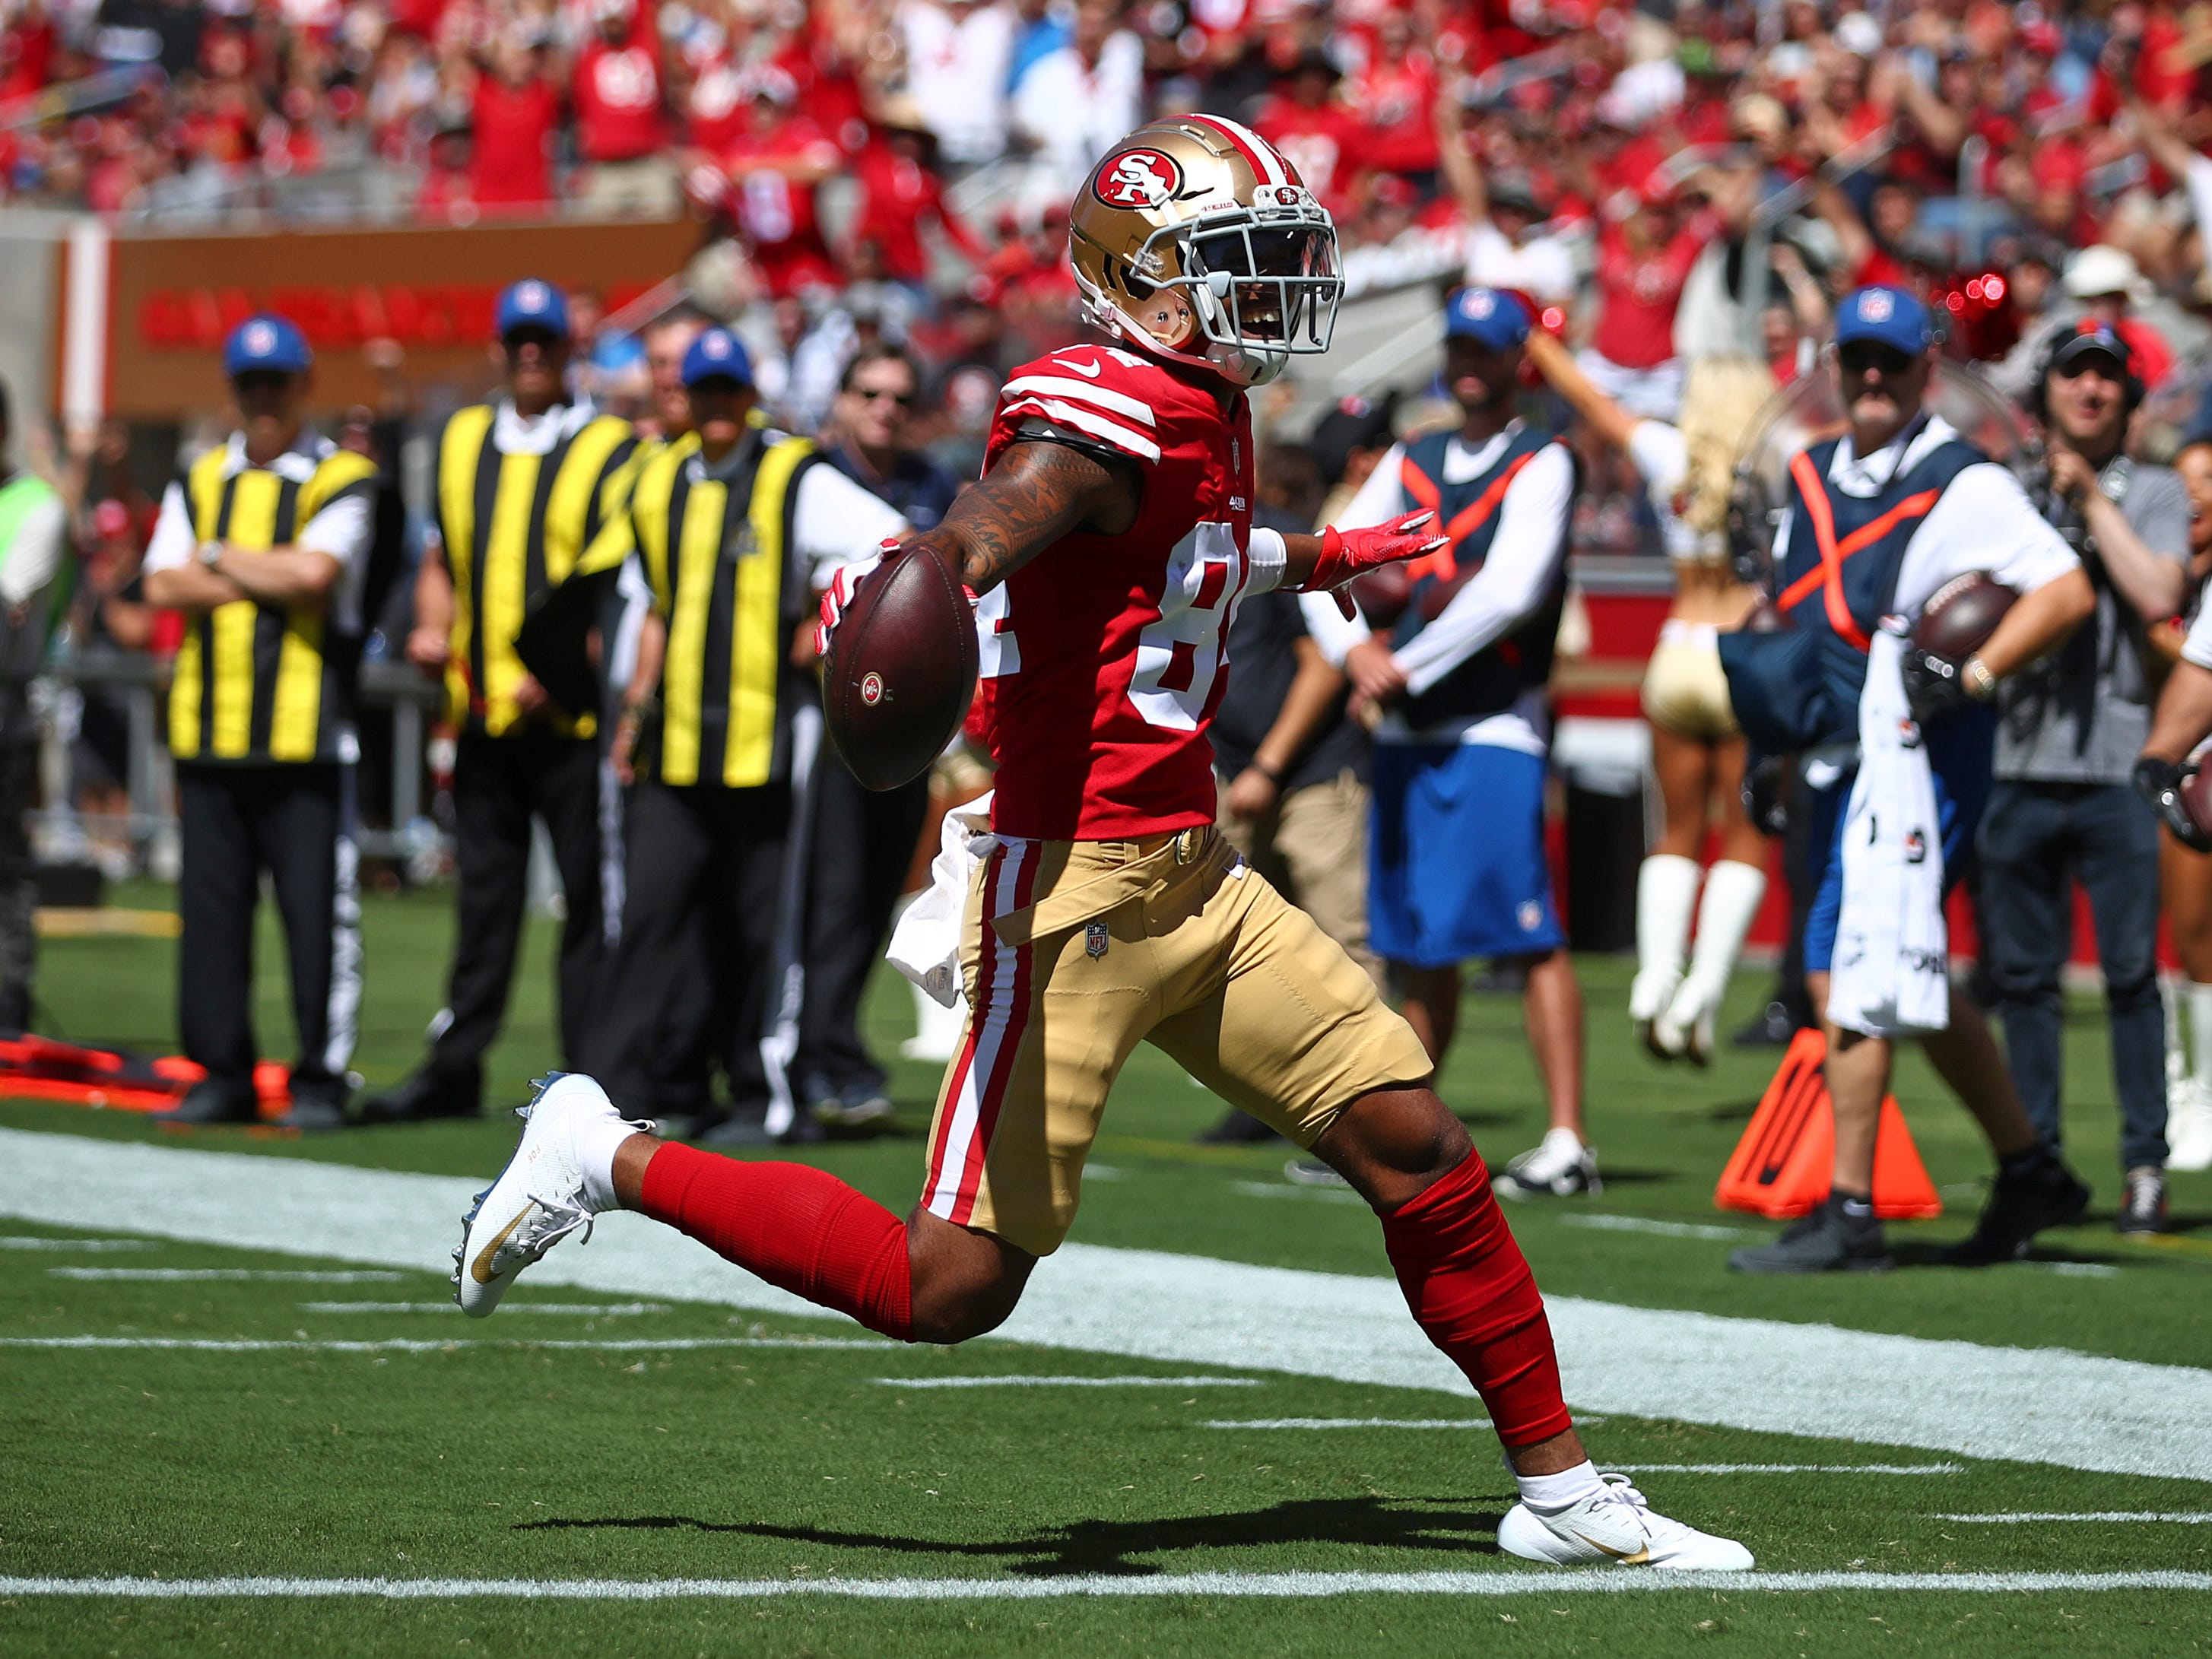 San Francisco 49ers wide receiver Kendrick Bourne carries the ball into the end zone for a touchdown during the first half.